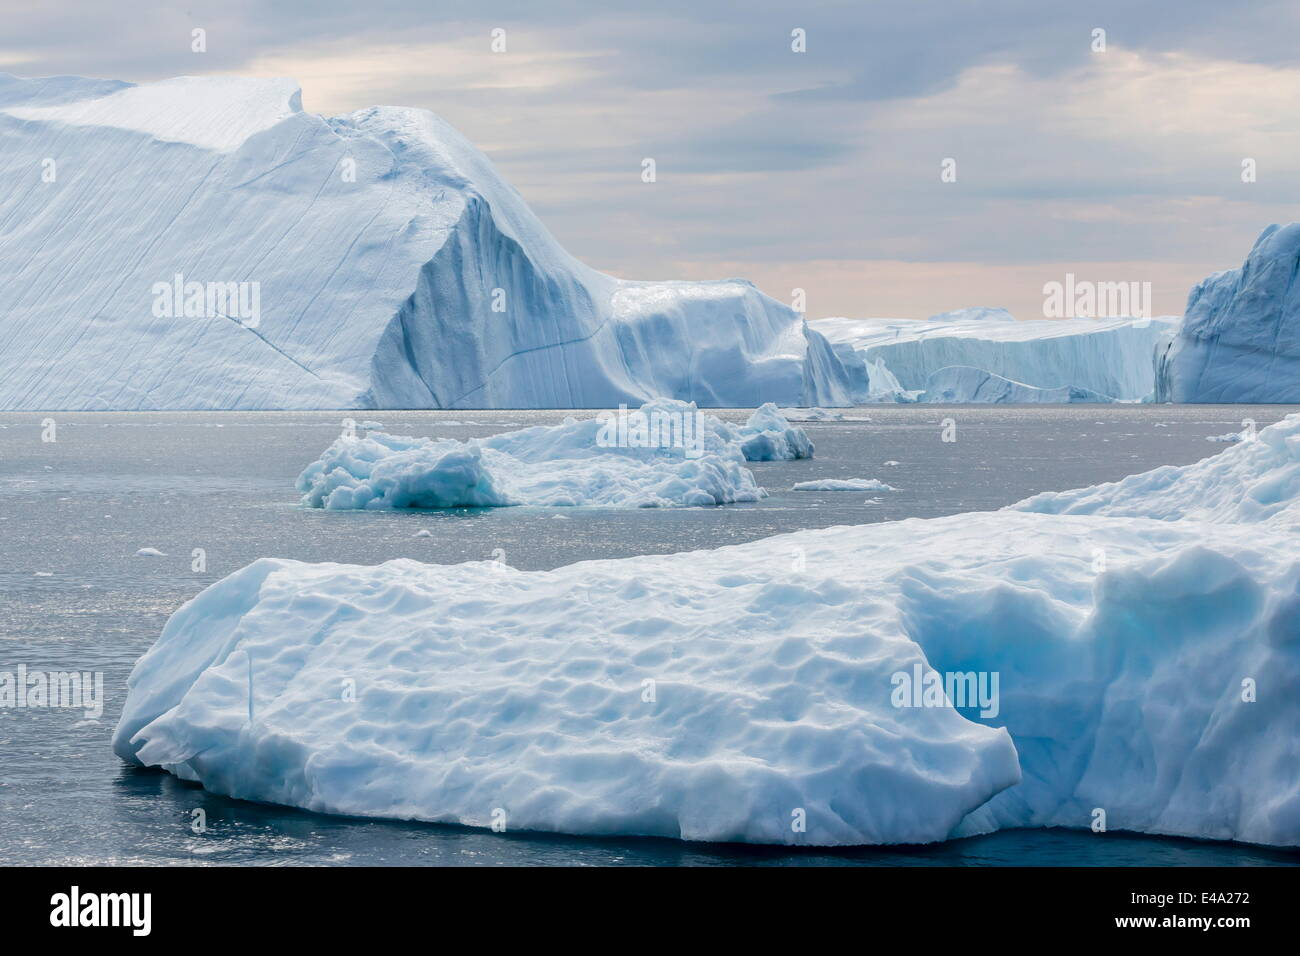 Huge icebergs calved from the Ilulissat Glacier, UNESCO World Heritage Site, Ilulissat, Greenland, Polar Regions - Stock Image